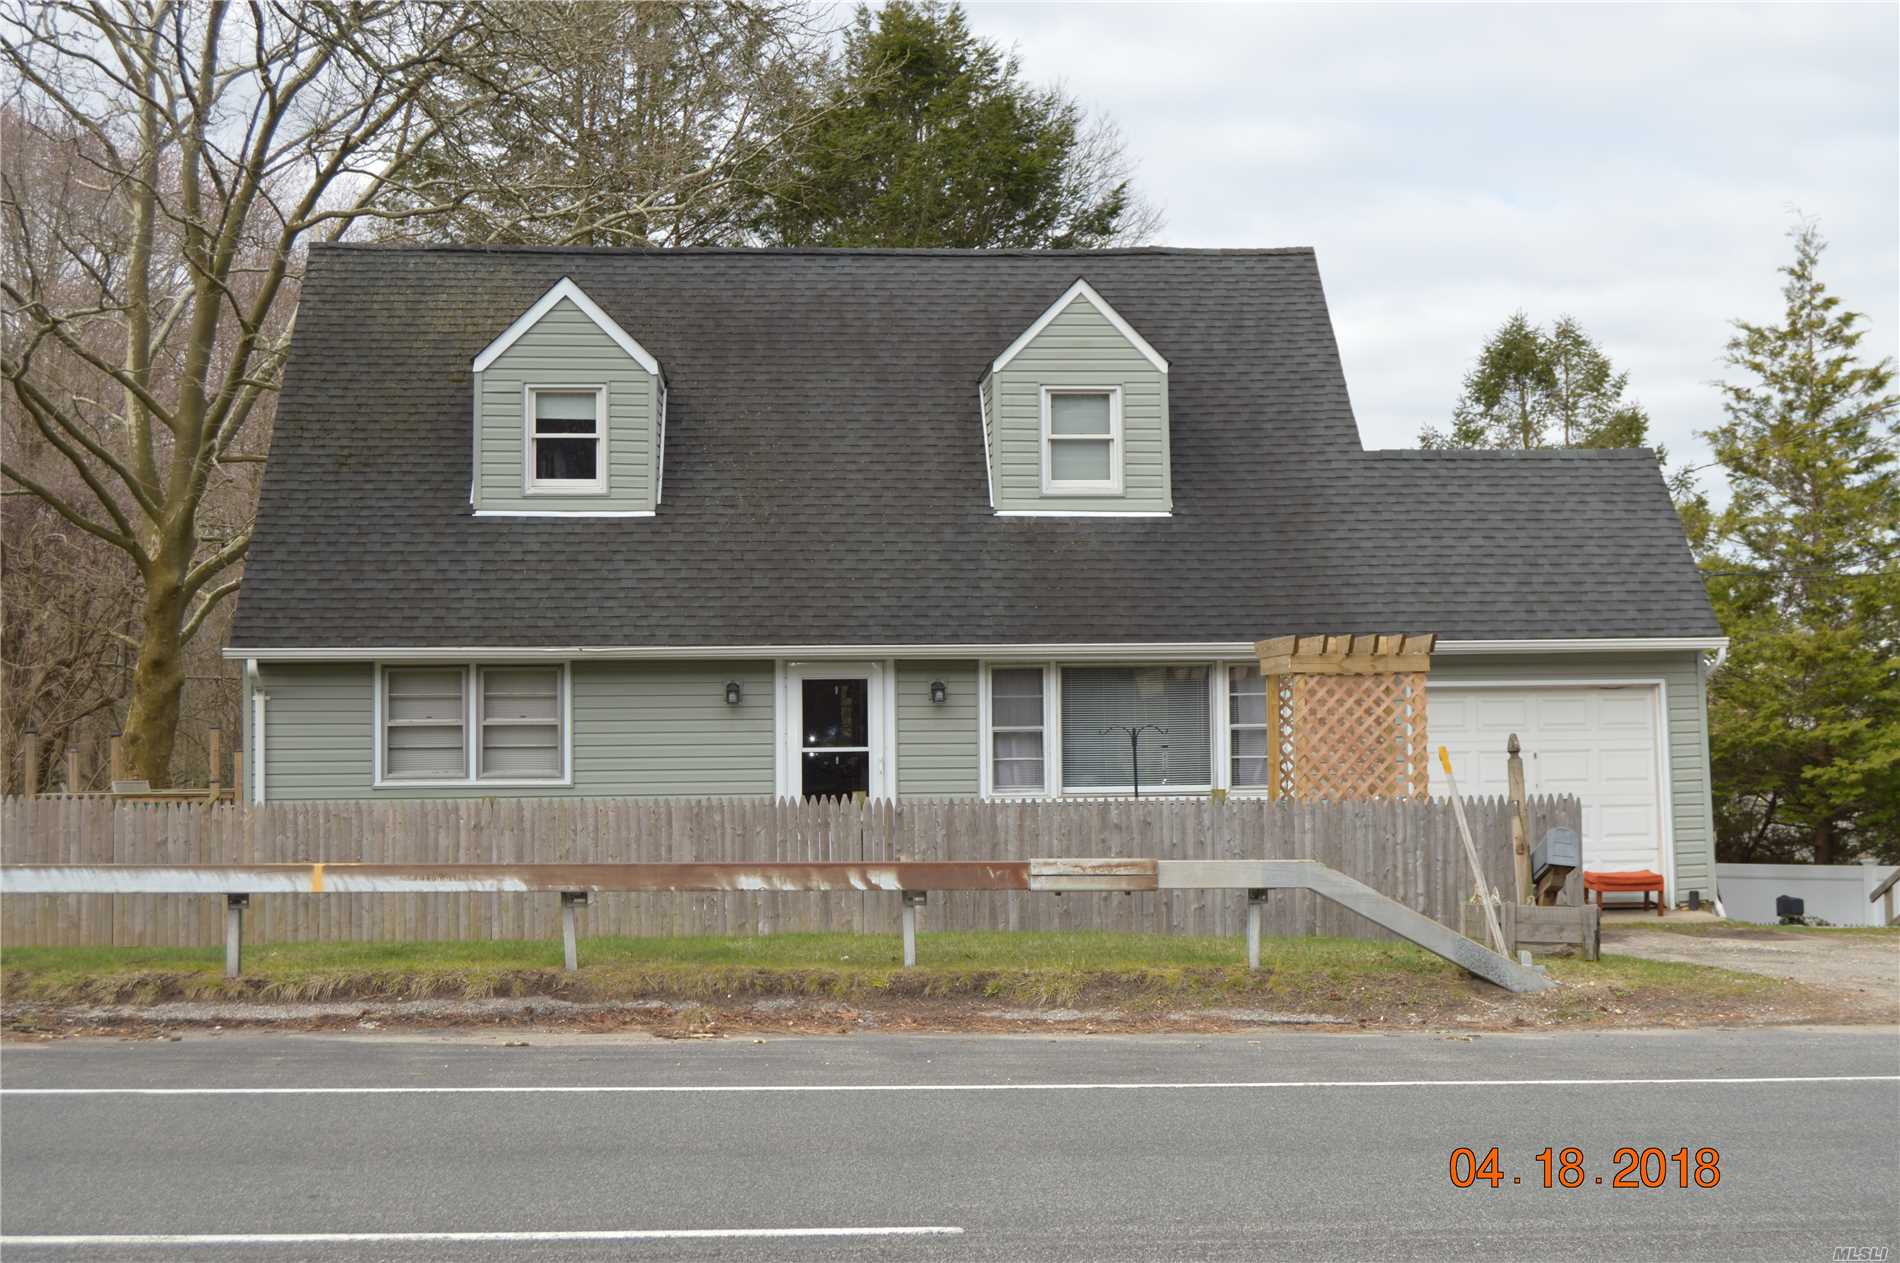 A Great 4 Bedrooom Three Bath Cape On An Oversized Piece Of Property, Adjoining Muttontown Preserve. New Siding, Kitchen, Floors, 1 Car Garage, Close To All.